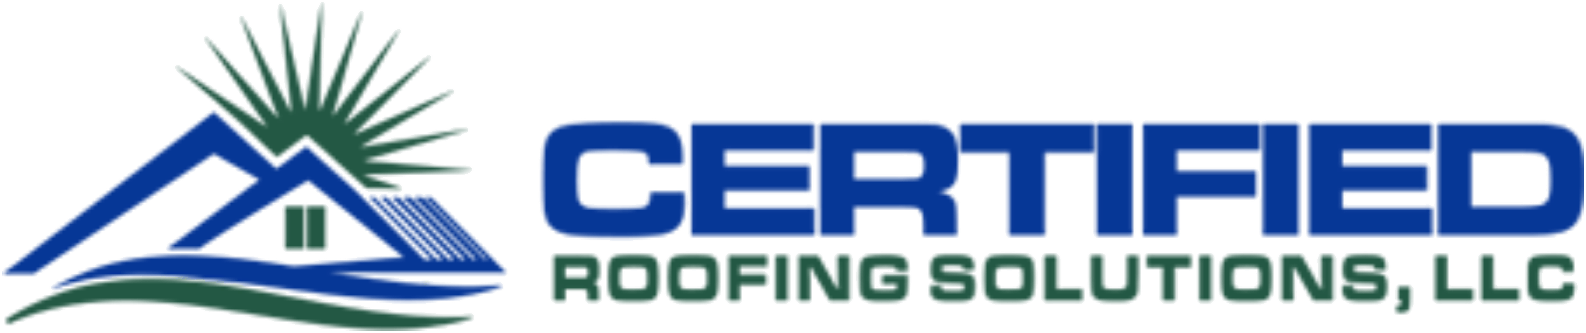 Certified Roofing Solutions, LLC | The Gulf Coast's Most Reliable